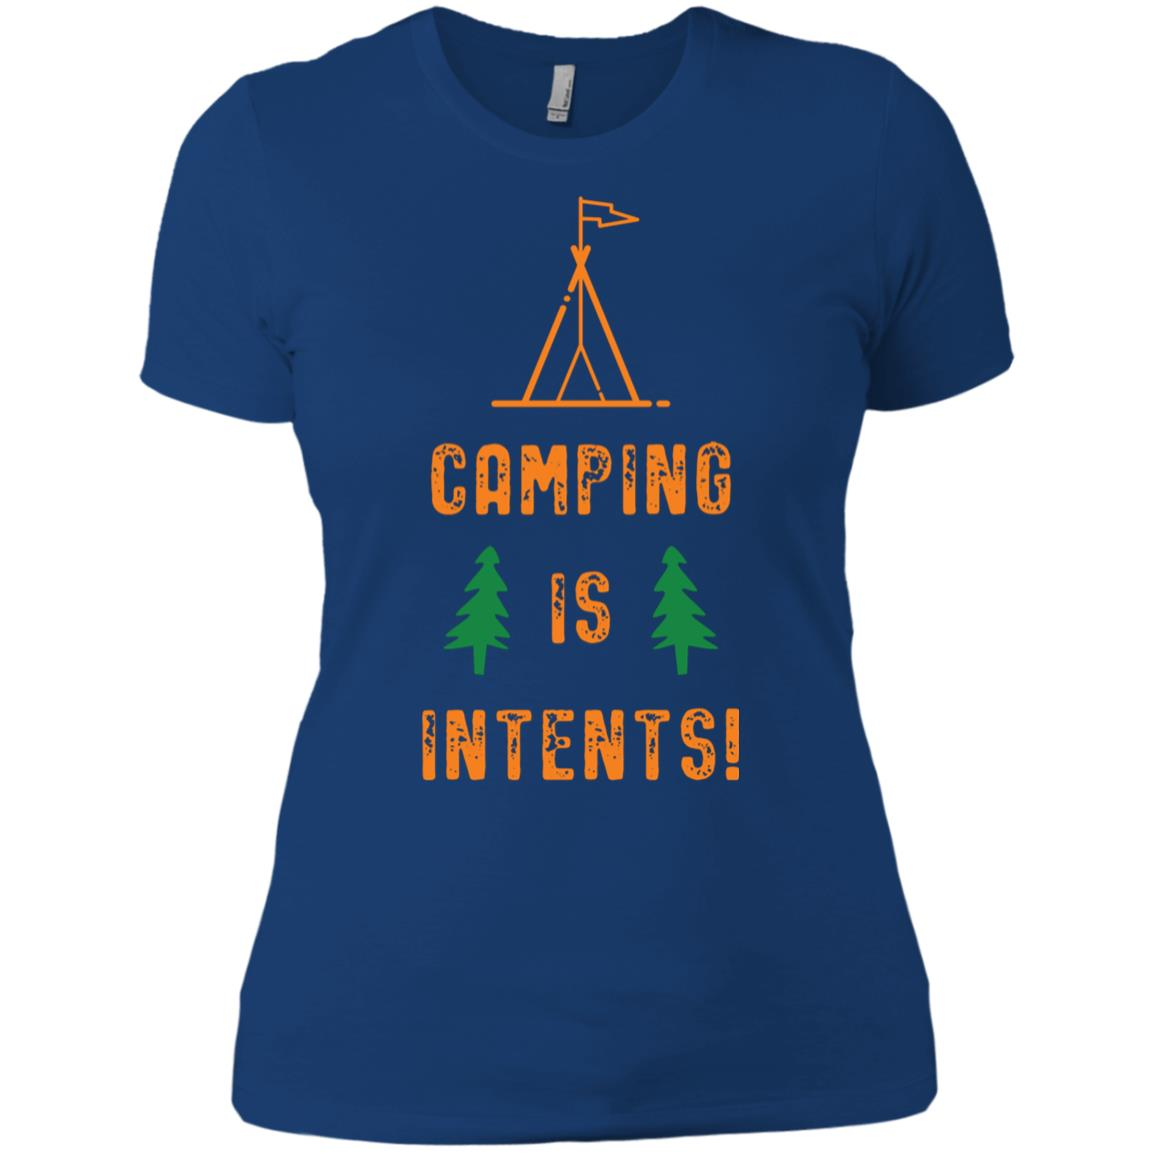 Camping is Intents! Women Short Sleeve